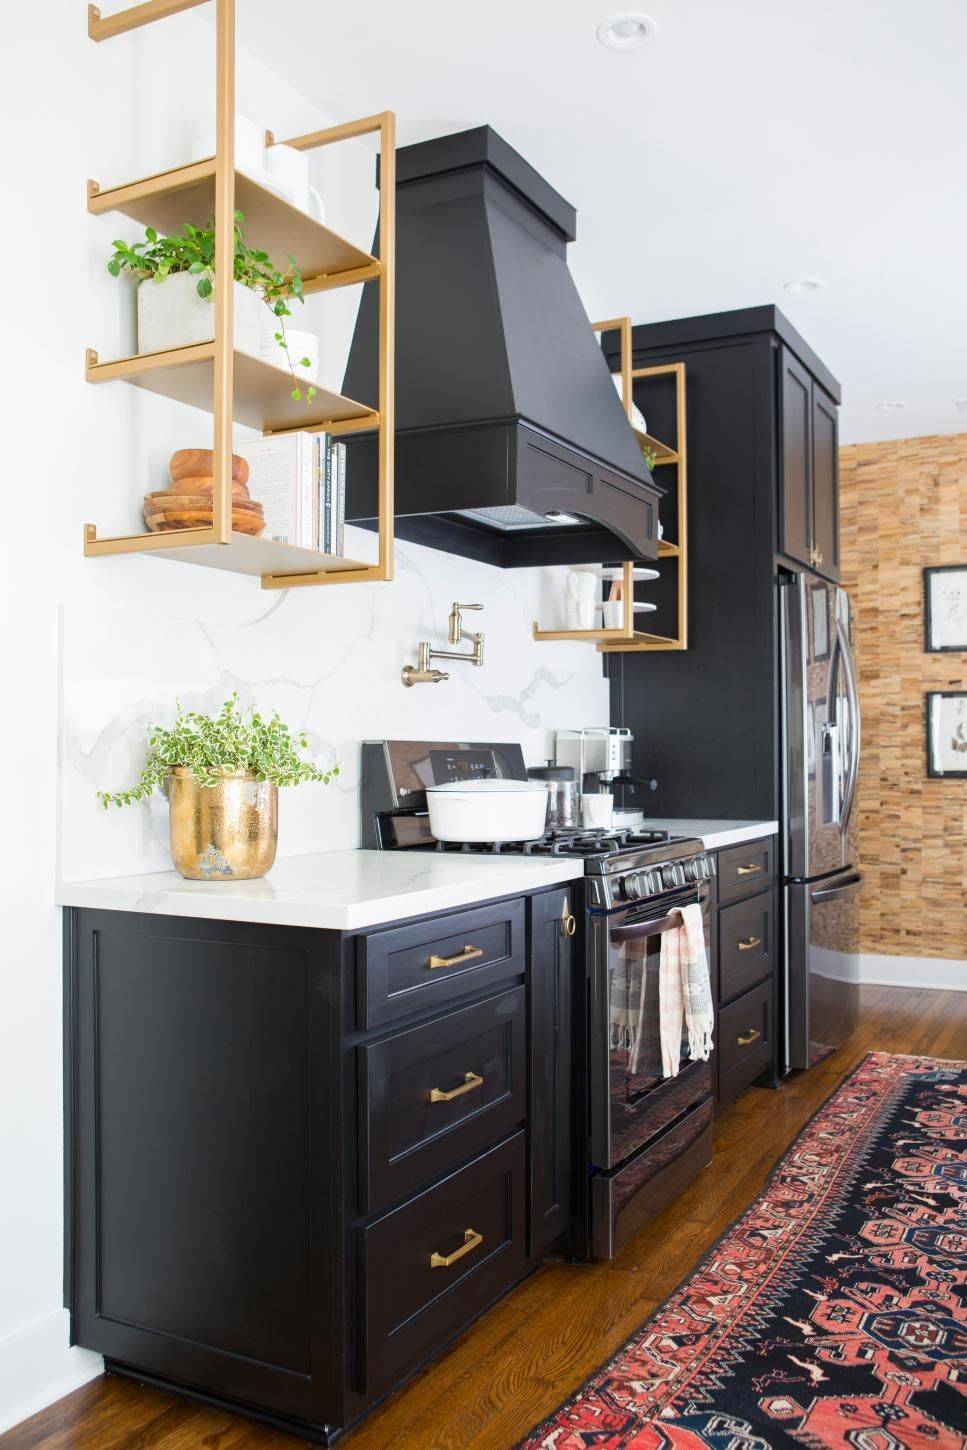 Chic White And Black Cabinets with Gold Accent.